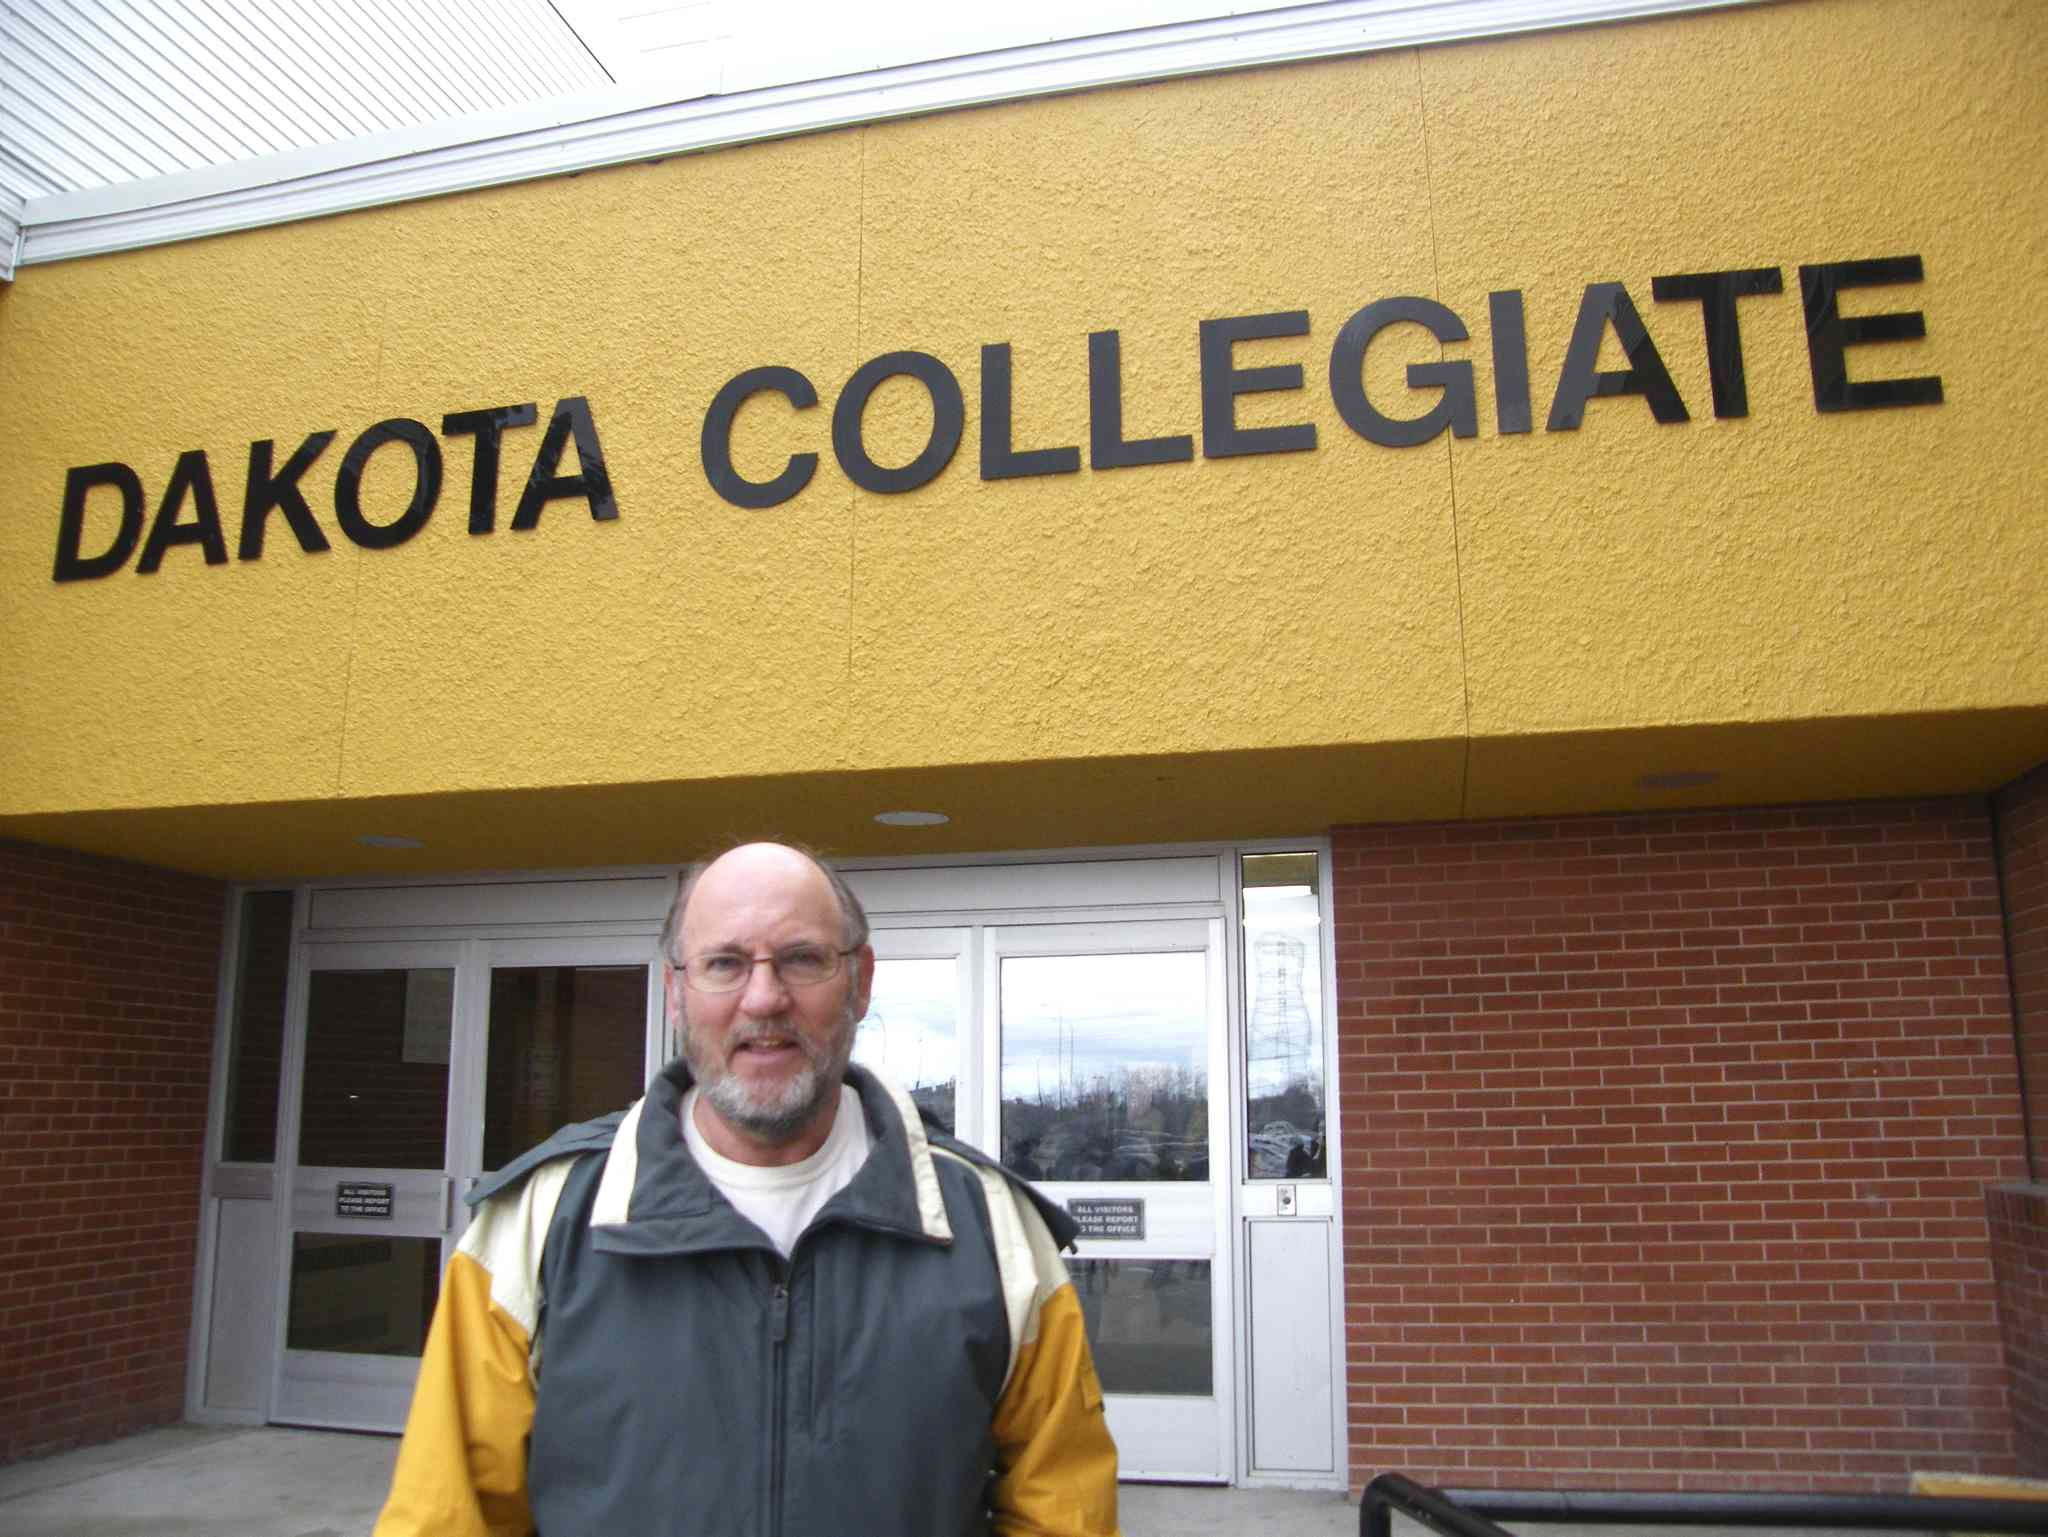 John Hindle, pictured outside Dakota Collegiate, is looking forward to the various celebrations lined up to mark the school's 50th reunion.